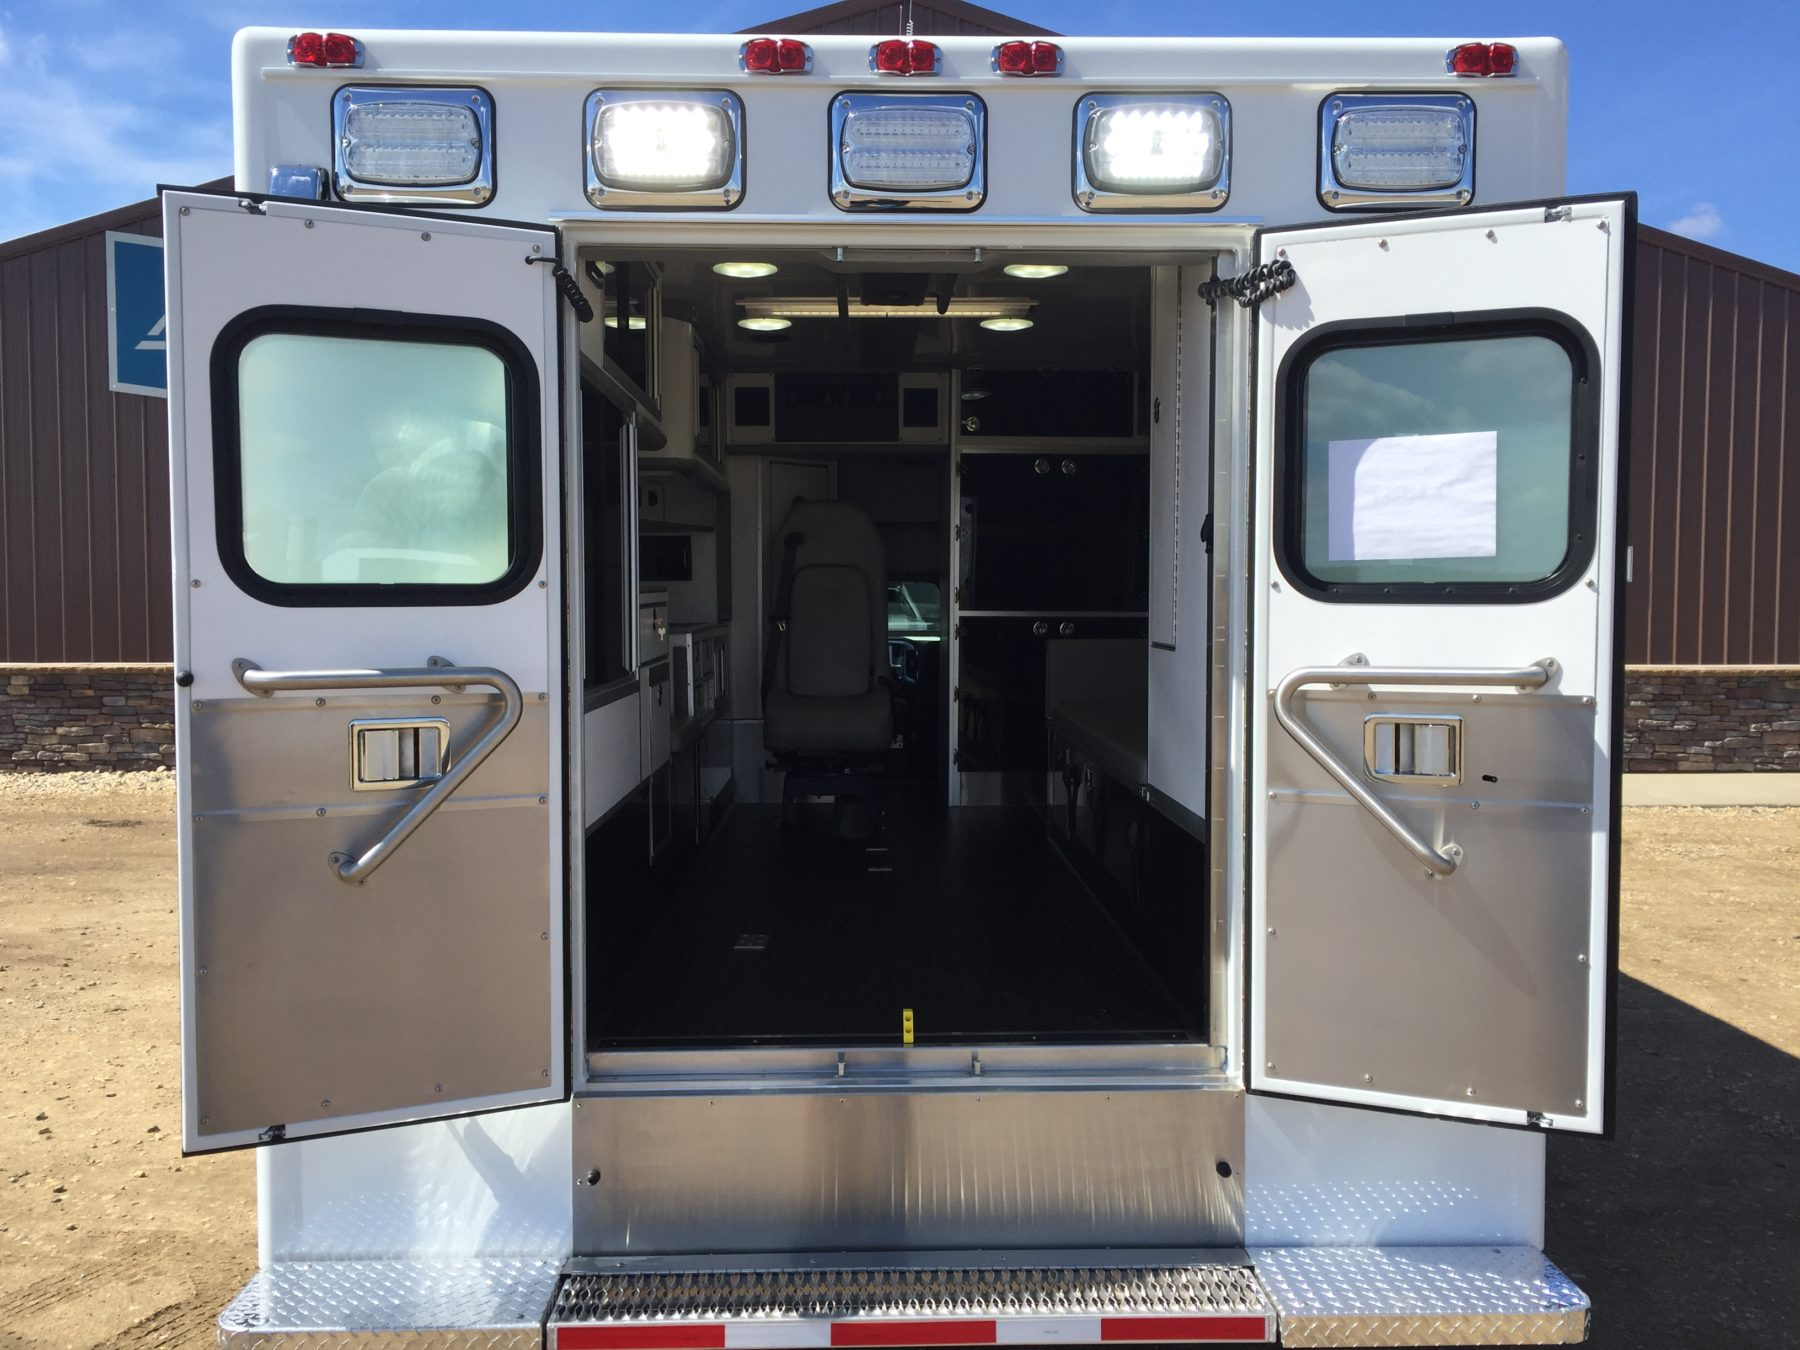 2017 Chevrolet K3500 4x4 Type 1 Ambulance For Sale – Picture 9